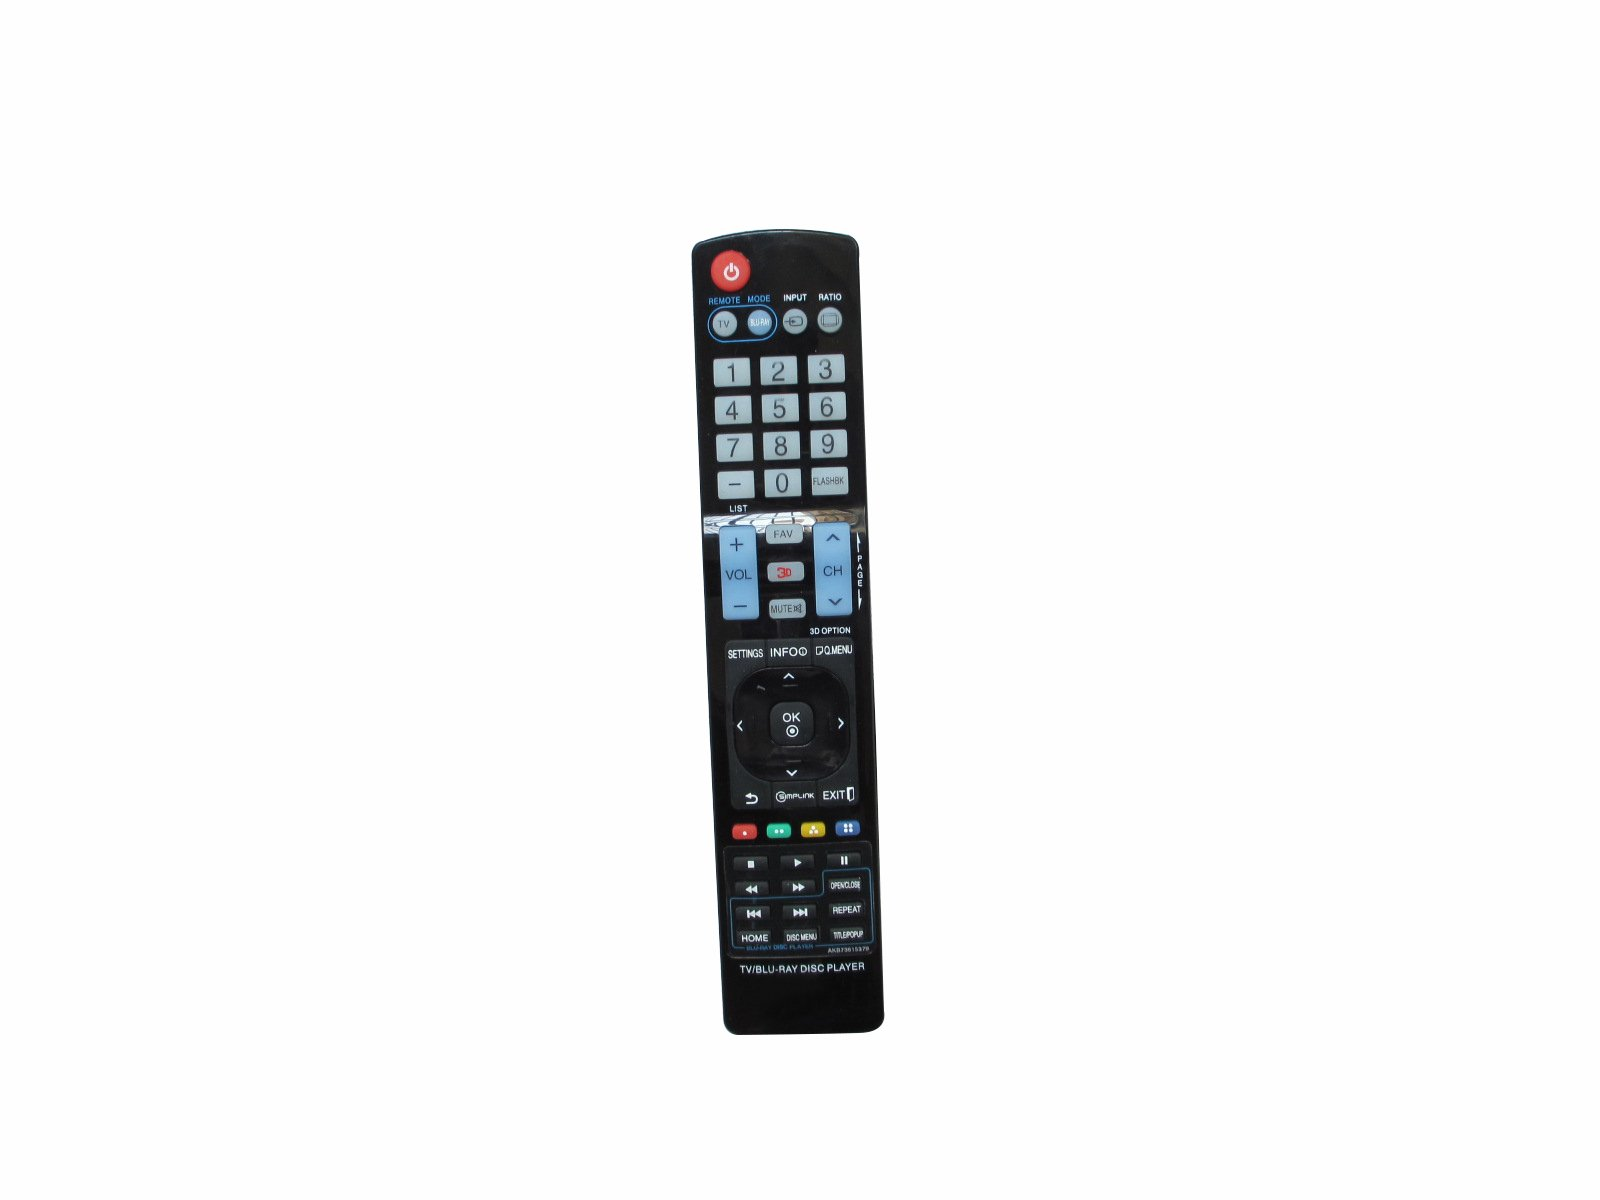 HCDZ Universal Replacement Remote Control For LG BP420K BP540 BP530R BD610 BD611 BD620C Network Blu-ray BD DVD Disc Player